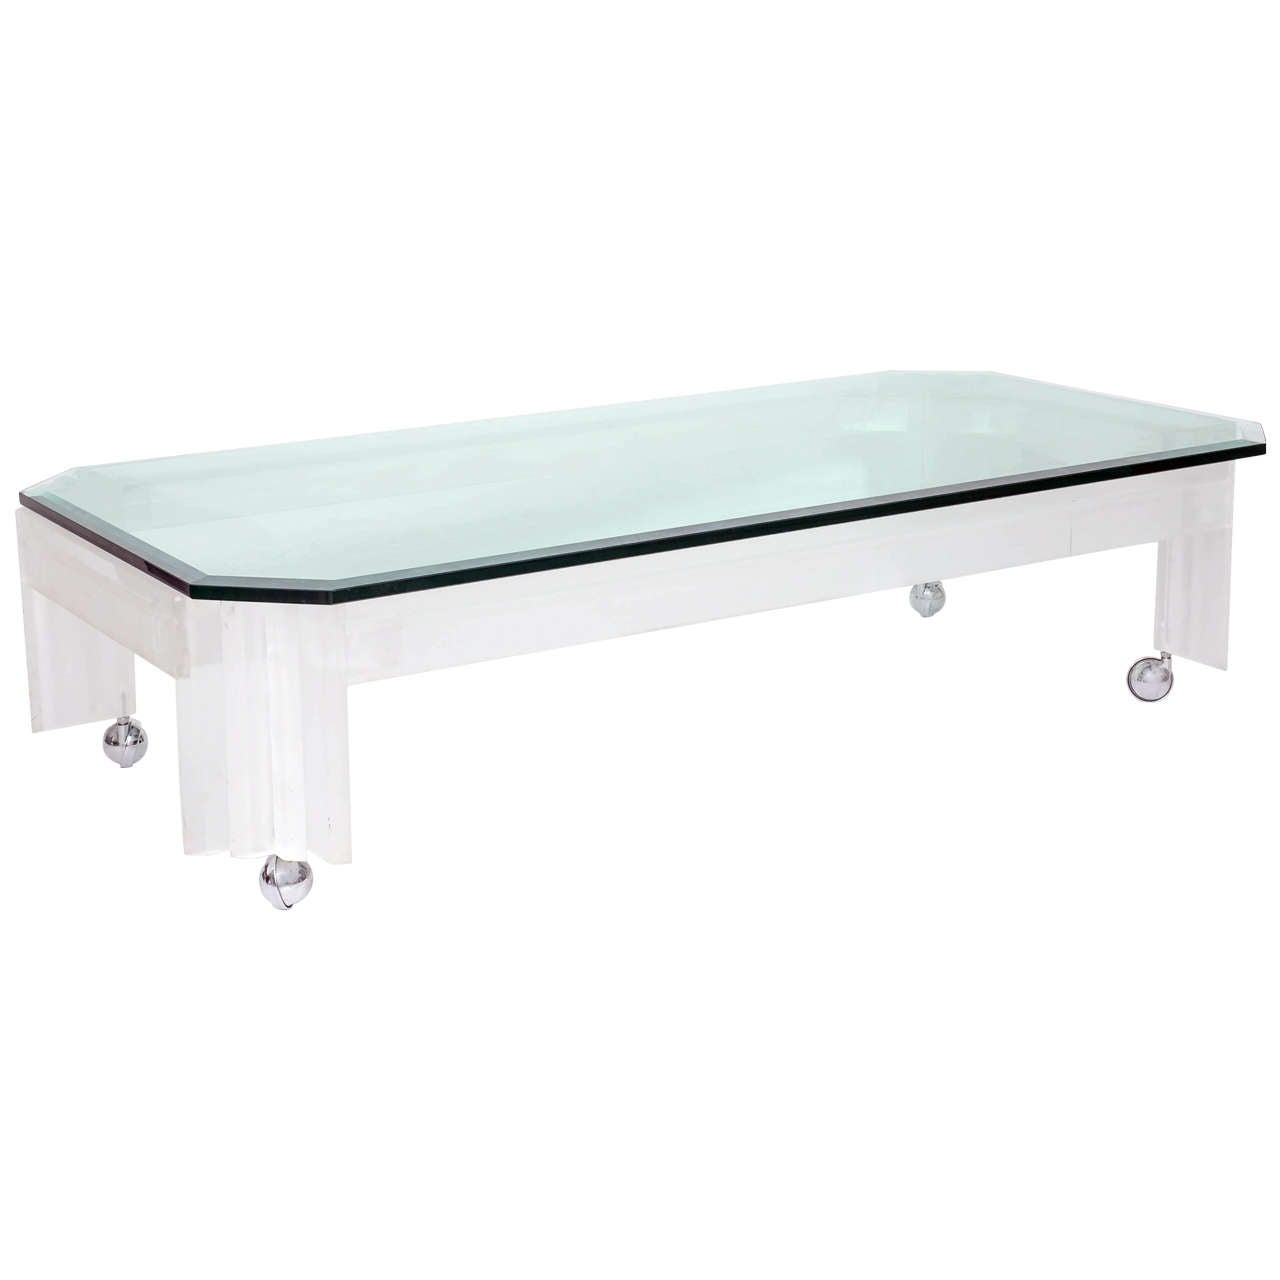 Oblong Lucite Coffee Table